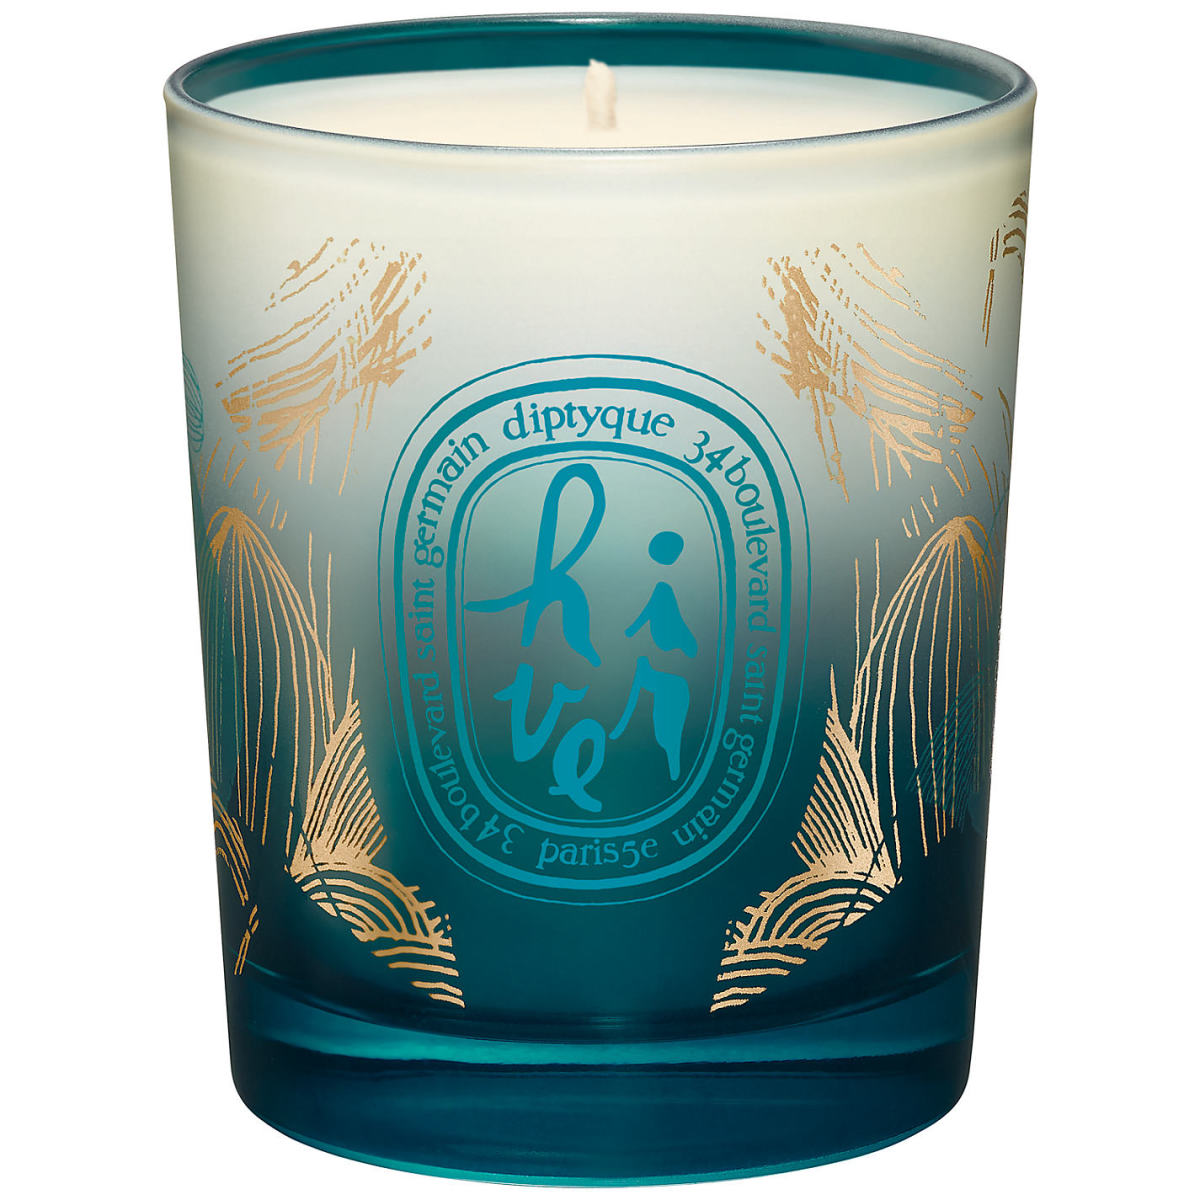 Diptyque Hiver Candle